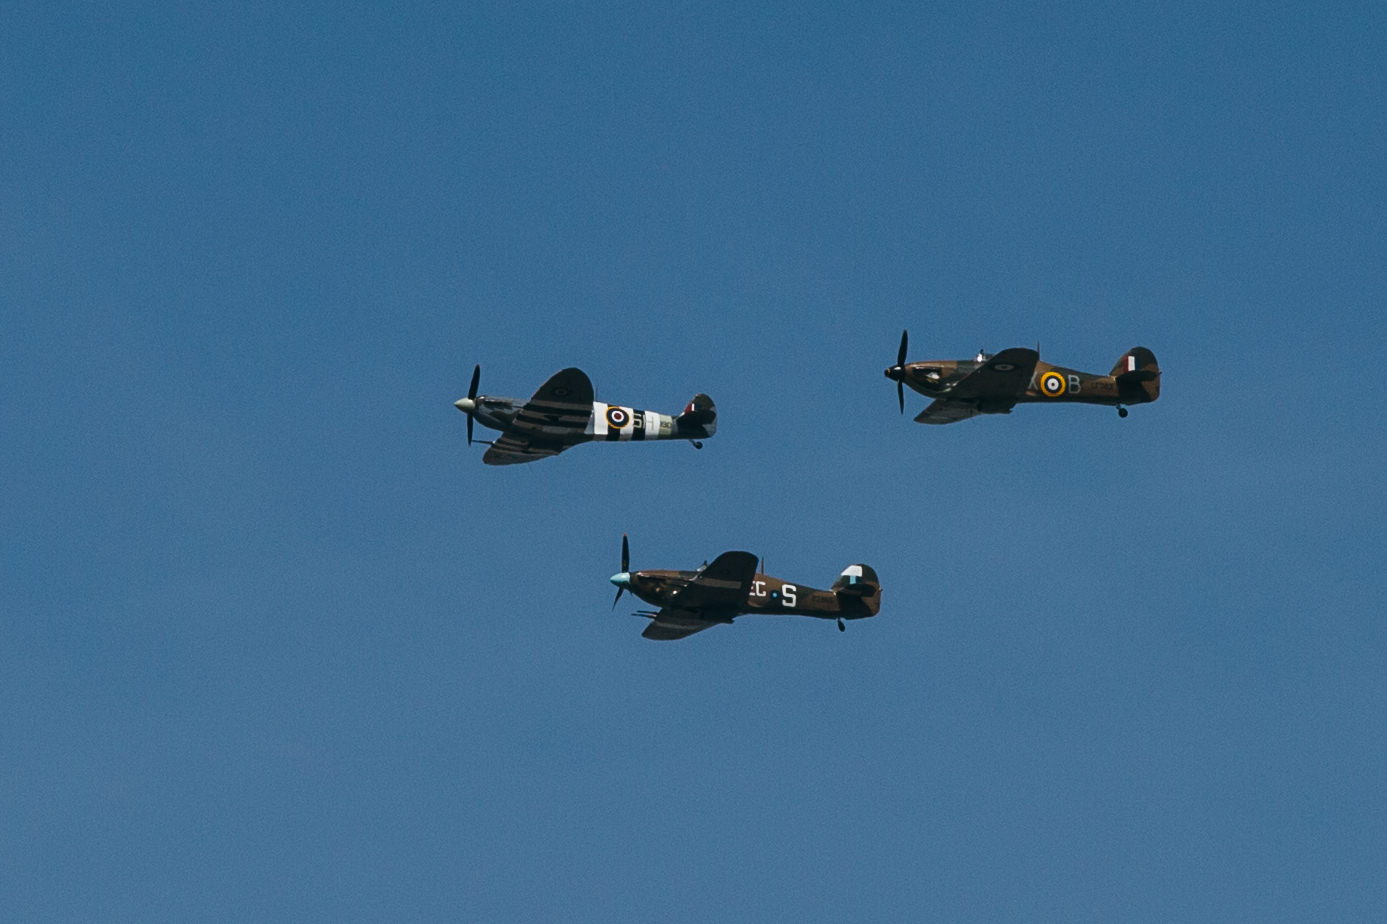 30 Spitfires flyover Thames london prewedding engagement shoot.jpg